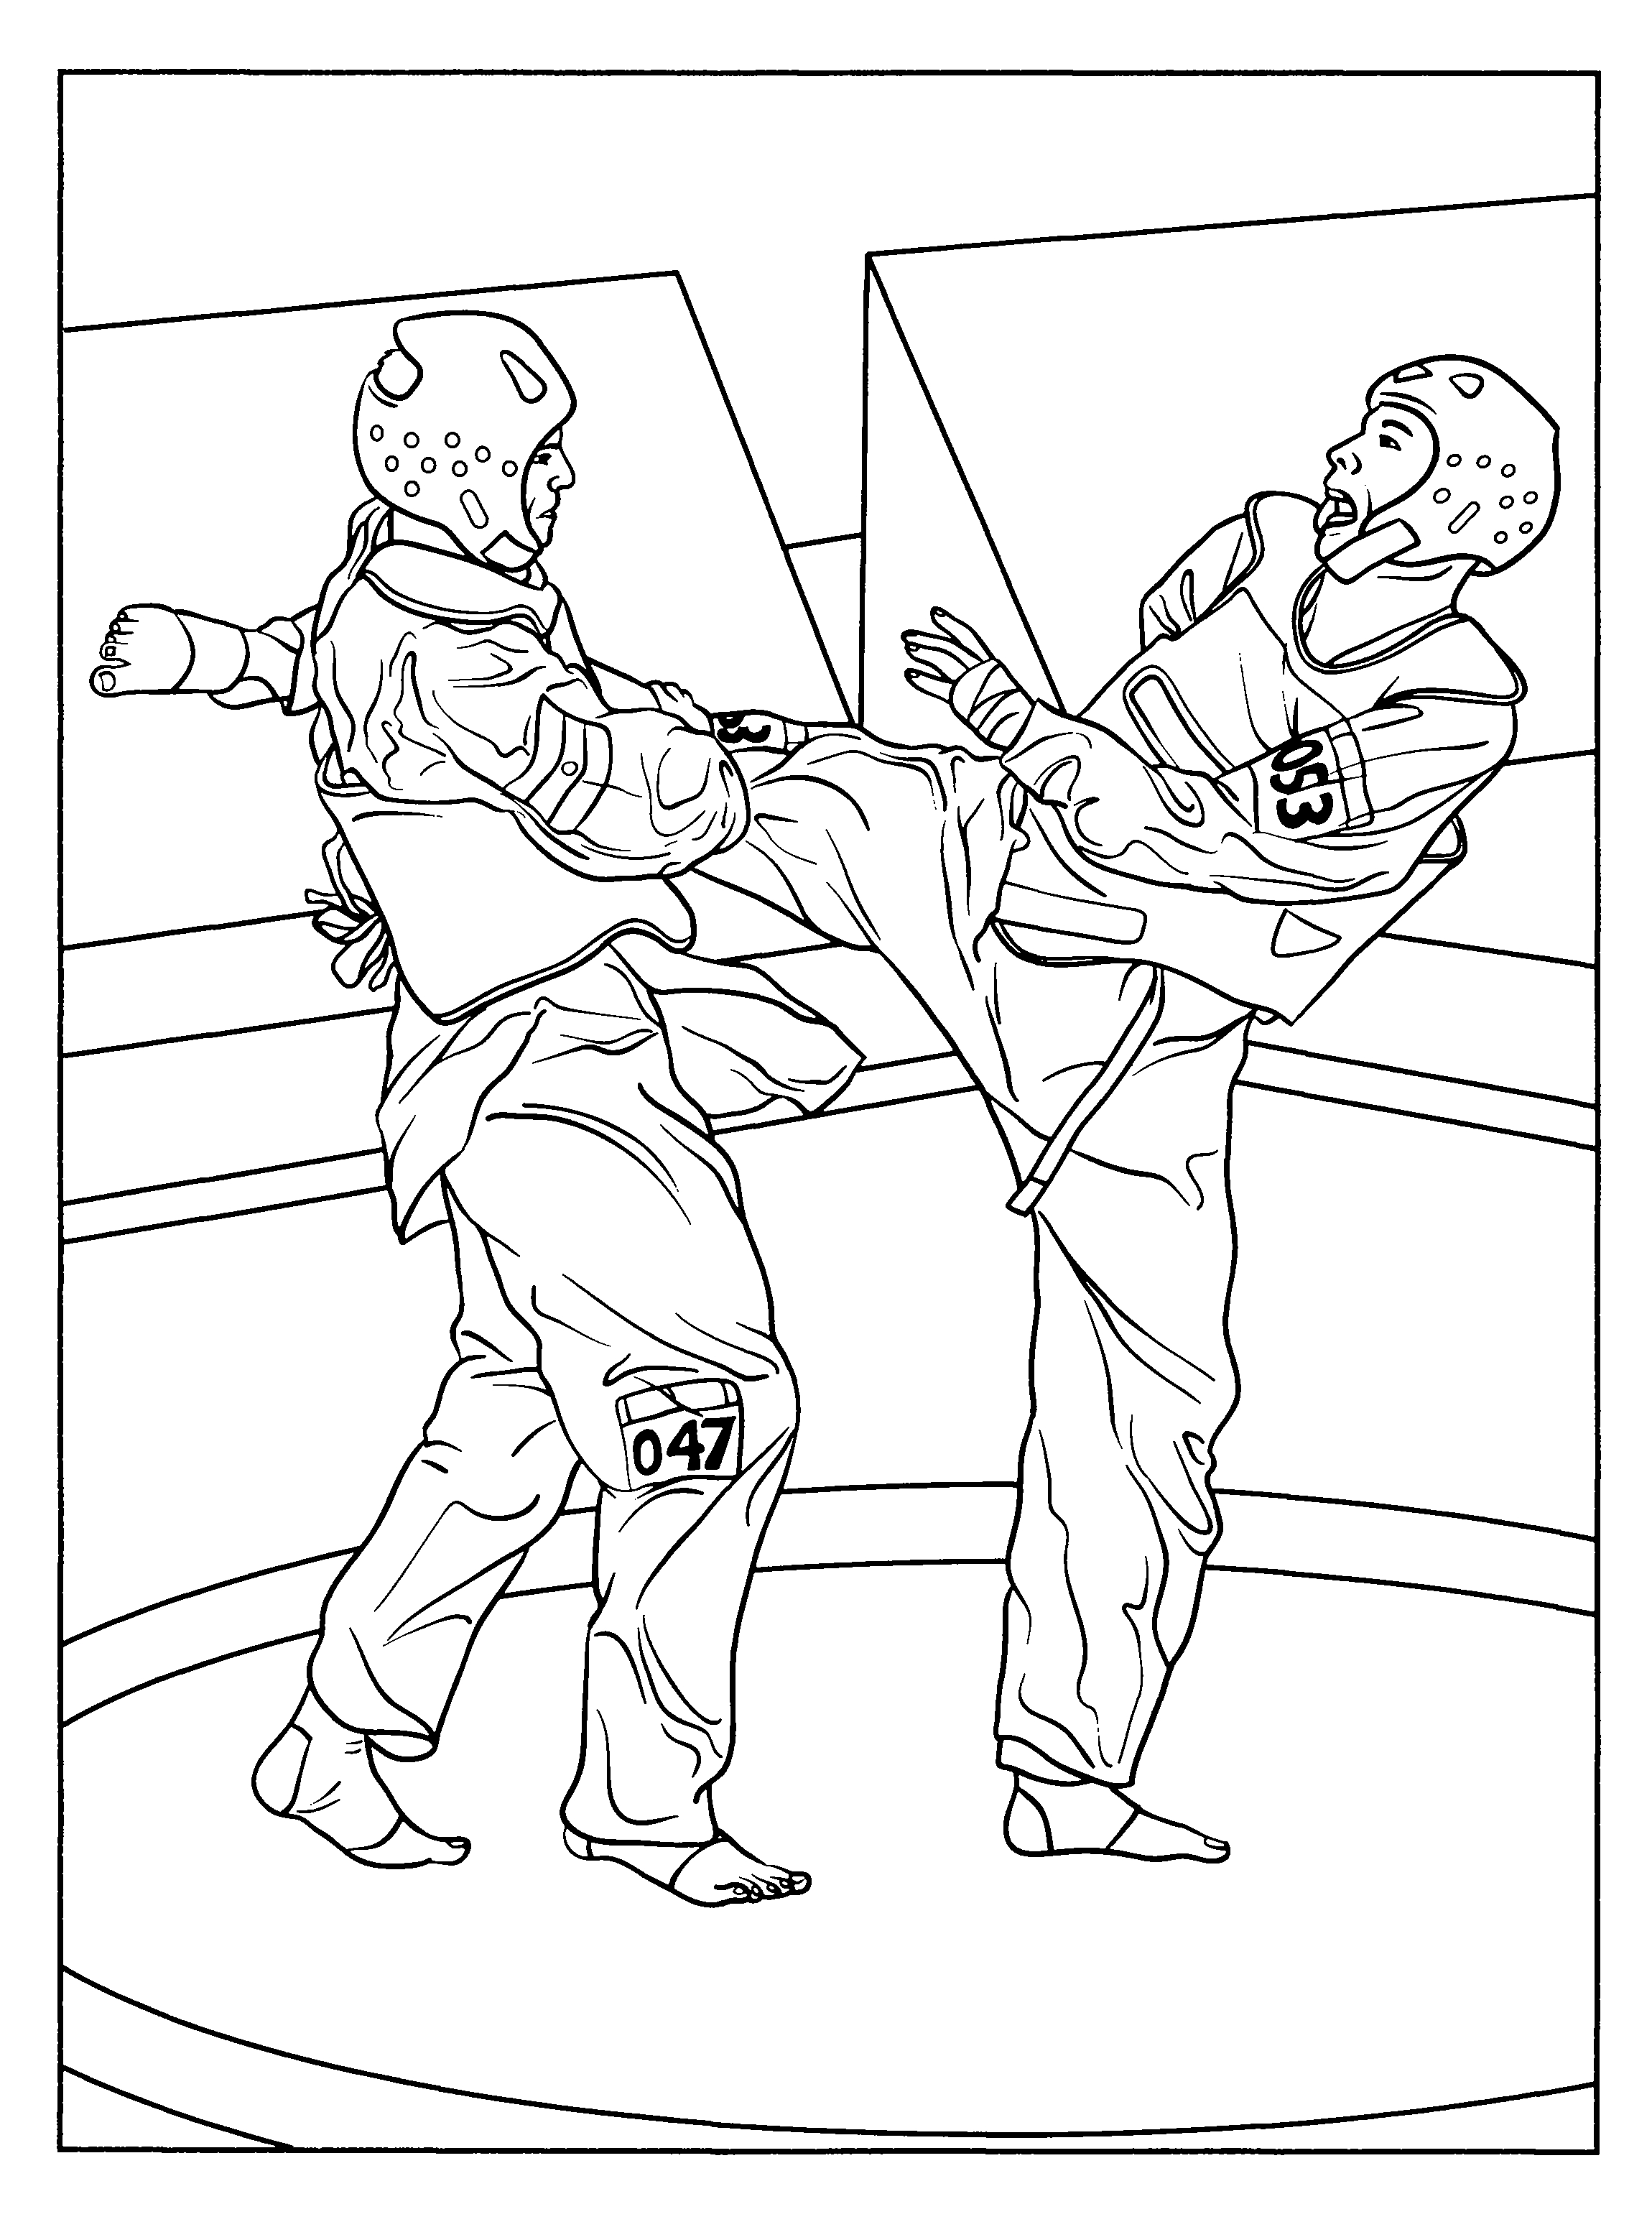 Karate Coloring Pages For Kids | Coloring Pages | Pinterest | Karate - Free Printable Karate Coloring Pages